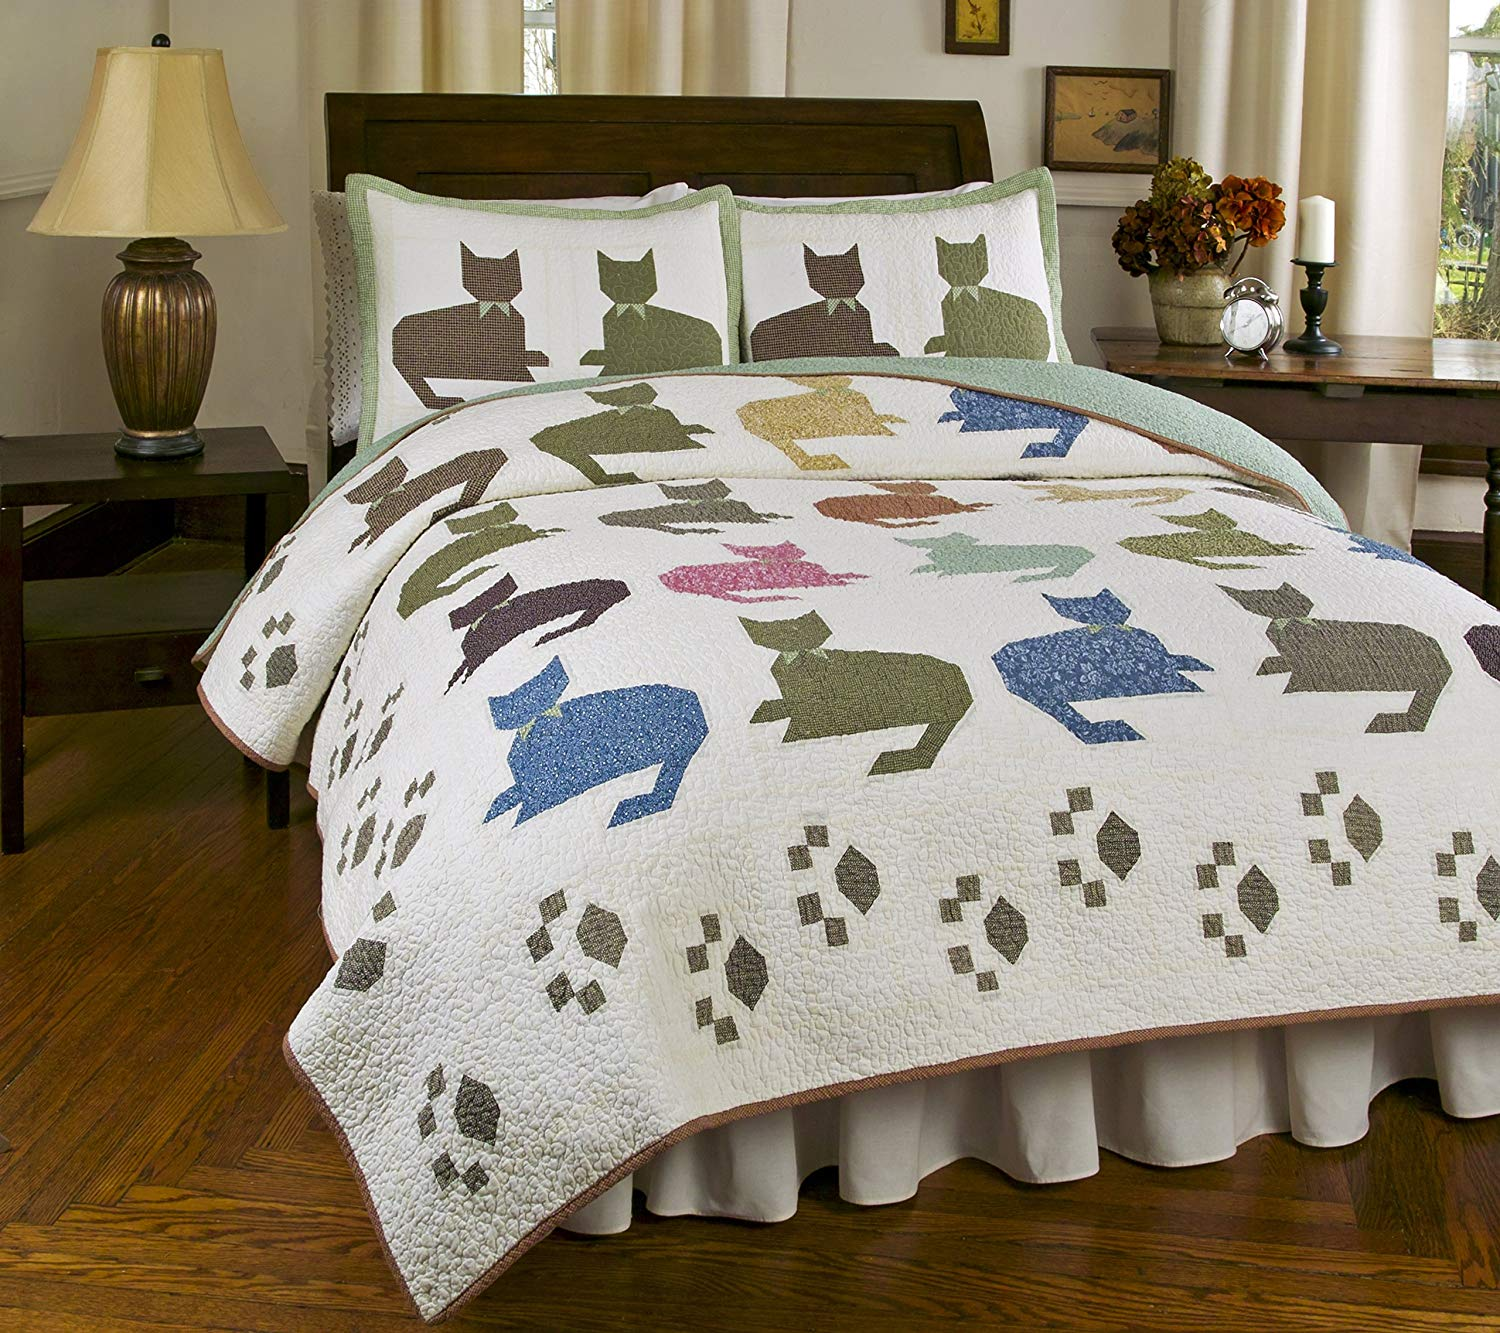 Image of: Cat Bedding Sets Ideas